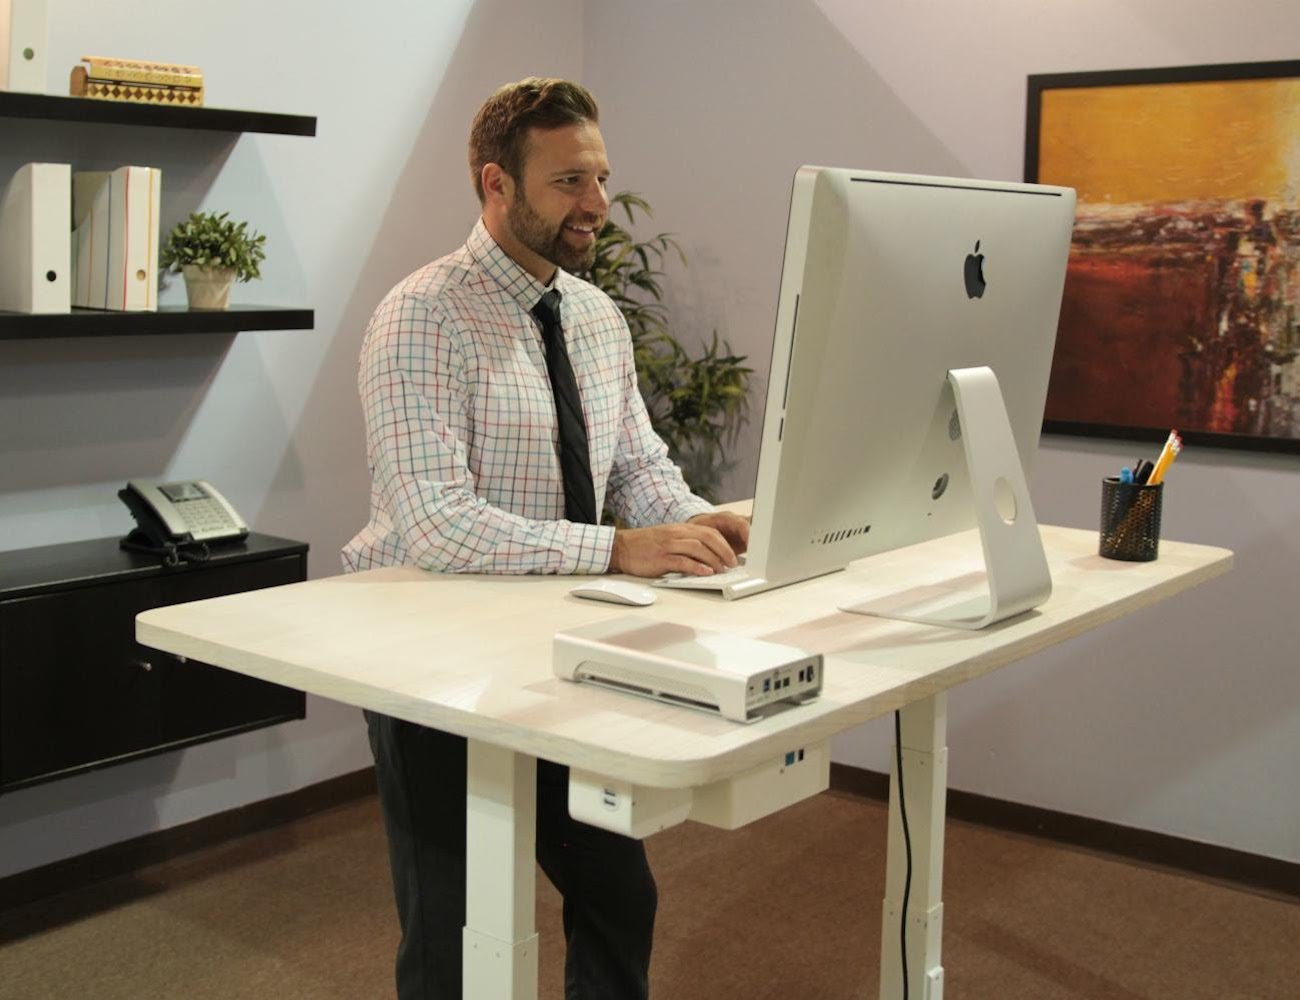 Bamboo Sit & Stand Smartdesk » Gadget Flow. Good Pc Desks. Drawer Pull Backplates. High Top Table Set. Pull Out Drawer Microwave. Night Table Lamps. Cheap Office Desk. Bed Drawers. How To Build A Roll Top Desk